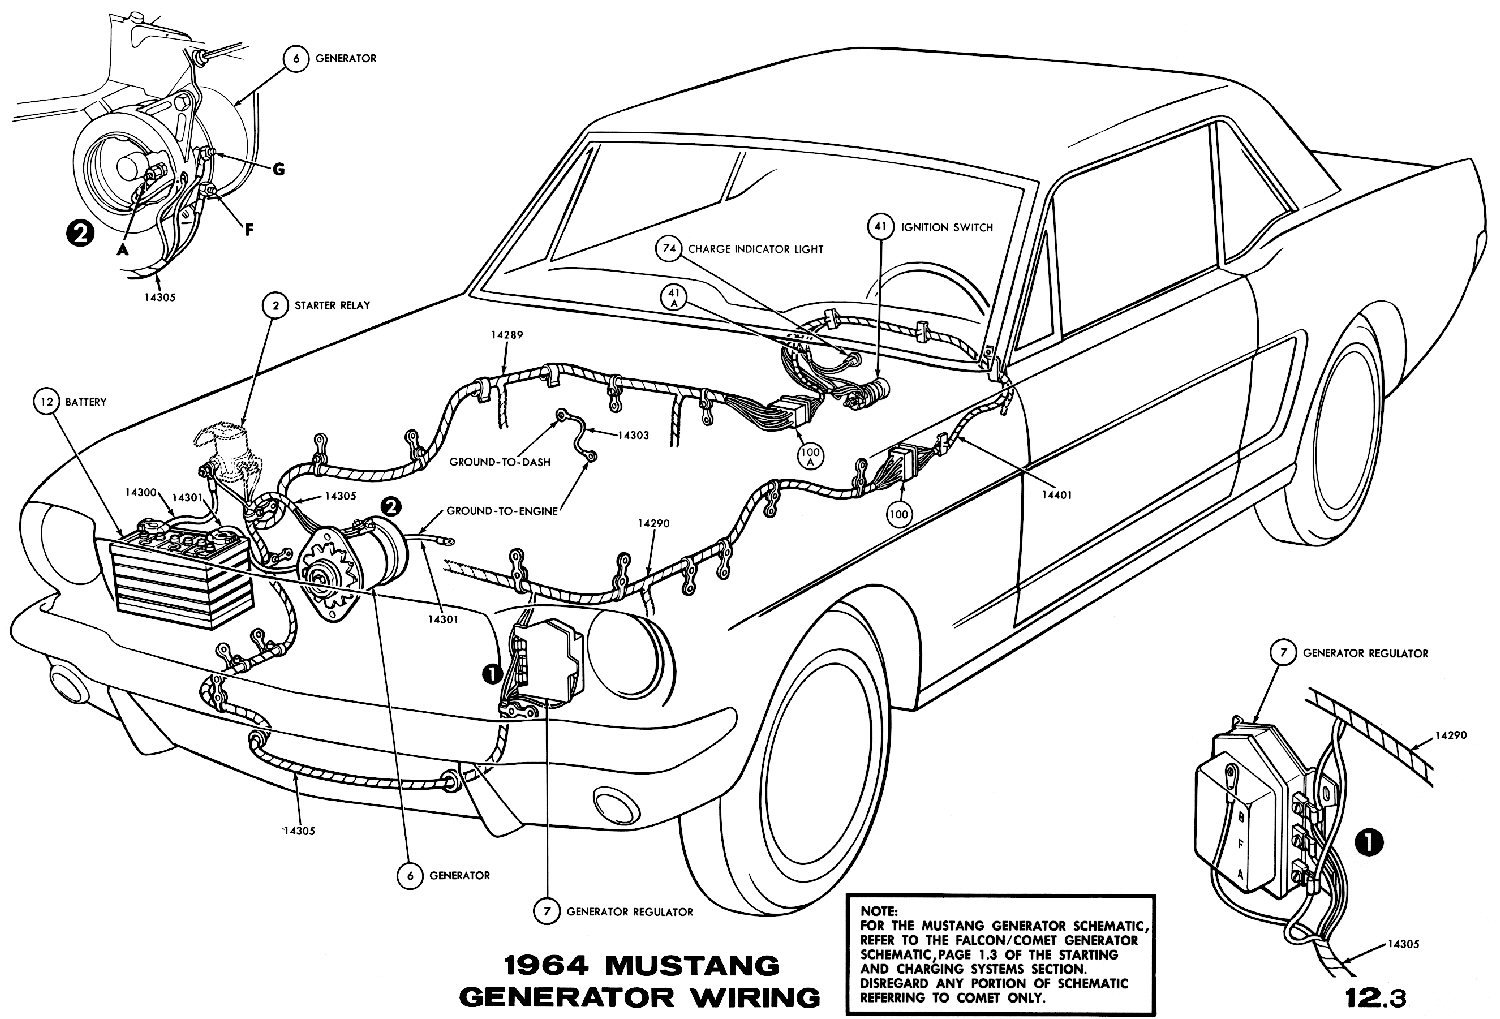 1964f 1964 mustang wiring diagrams average joe restoration 1966 mustang starter wiring diagram at alyssarenee.co